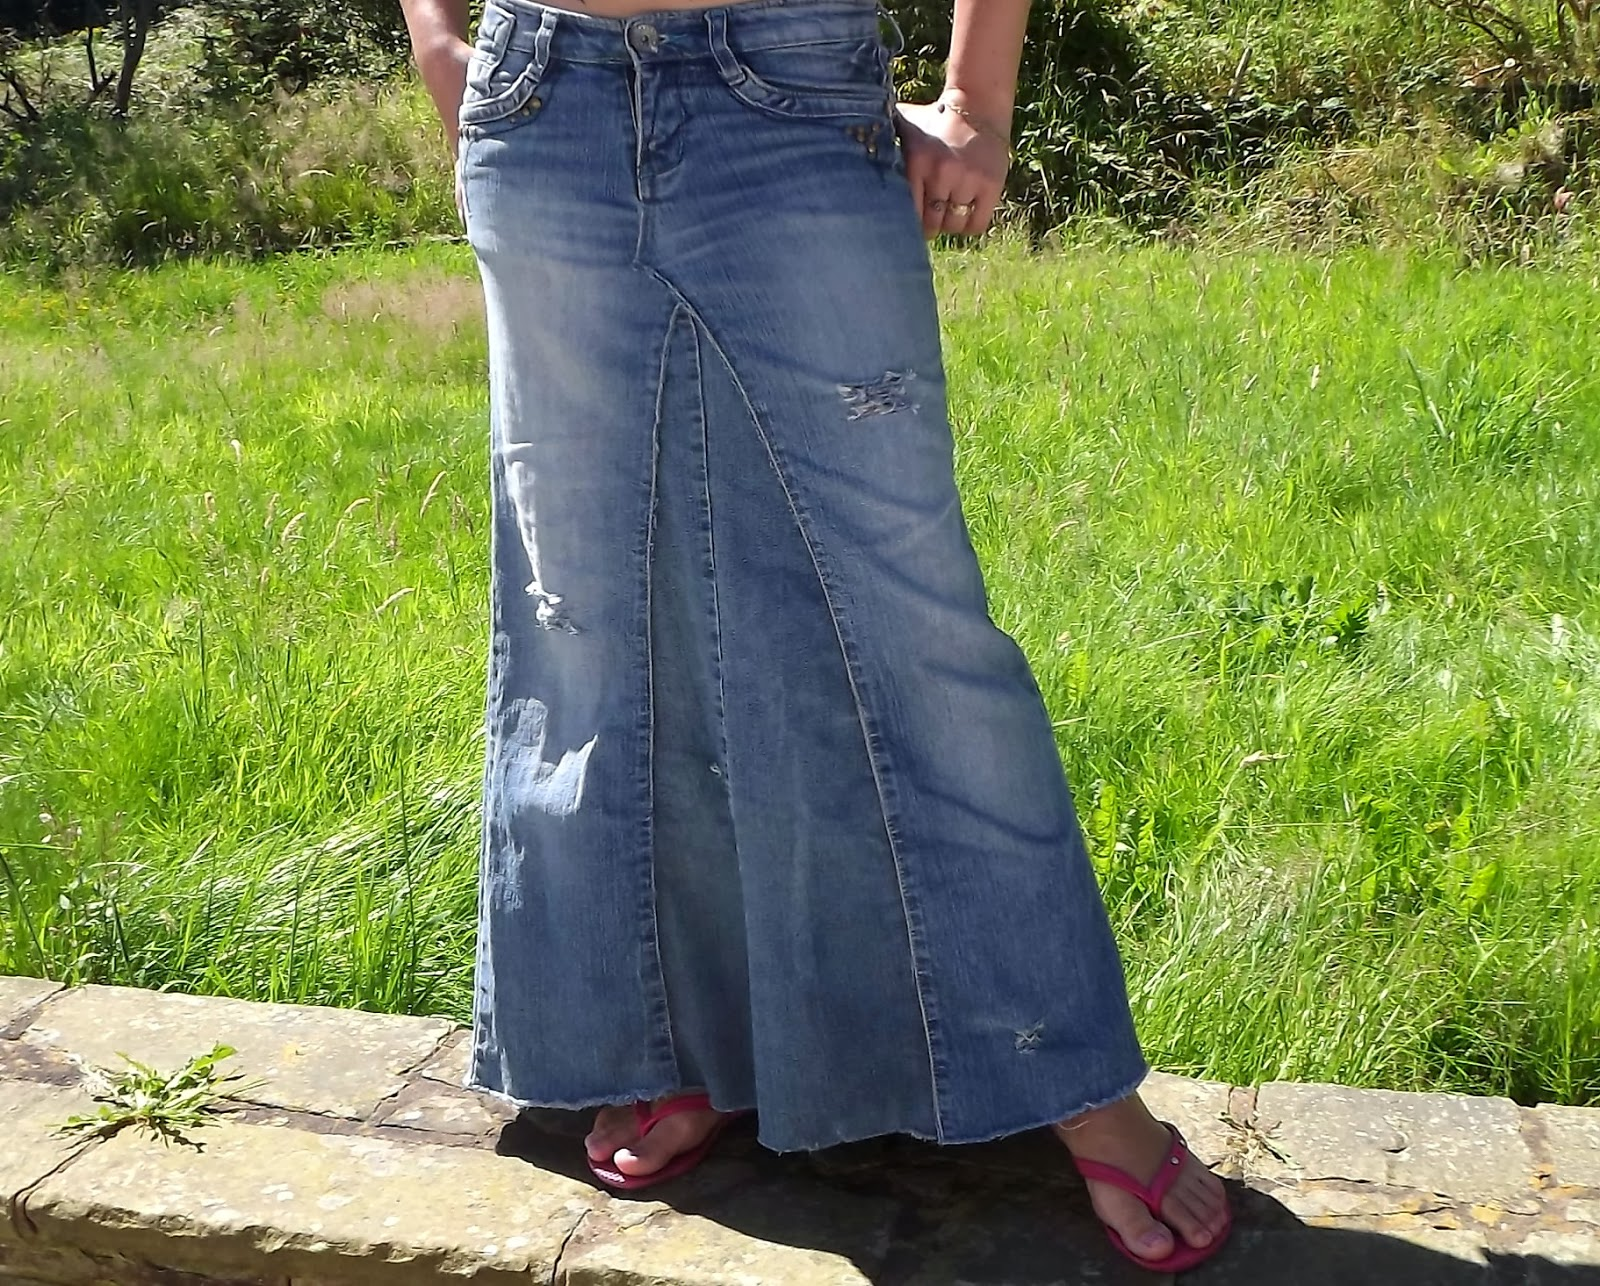 Realisation with refashions nina mia 39 s diy for Old denim